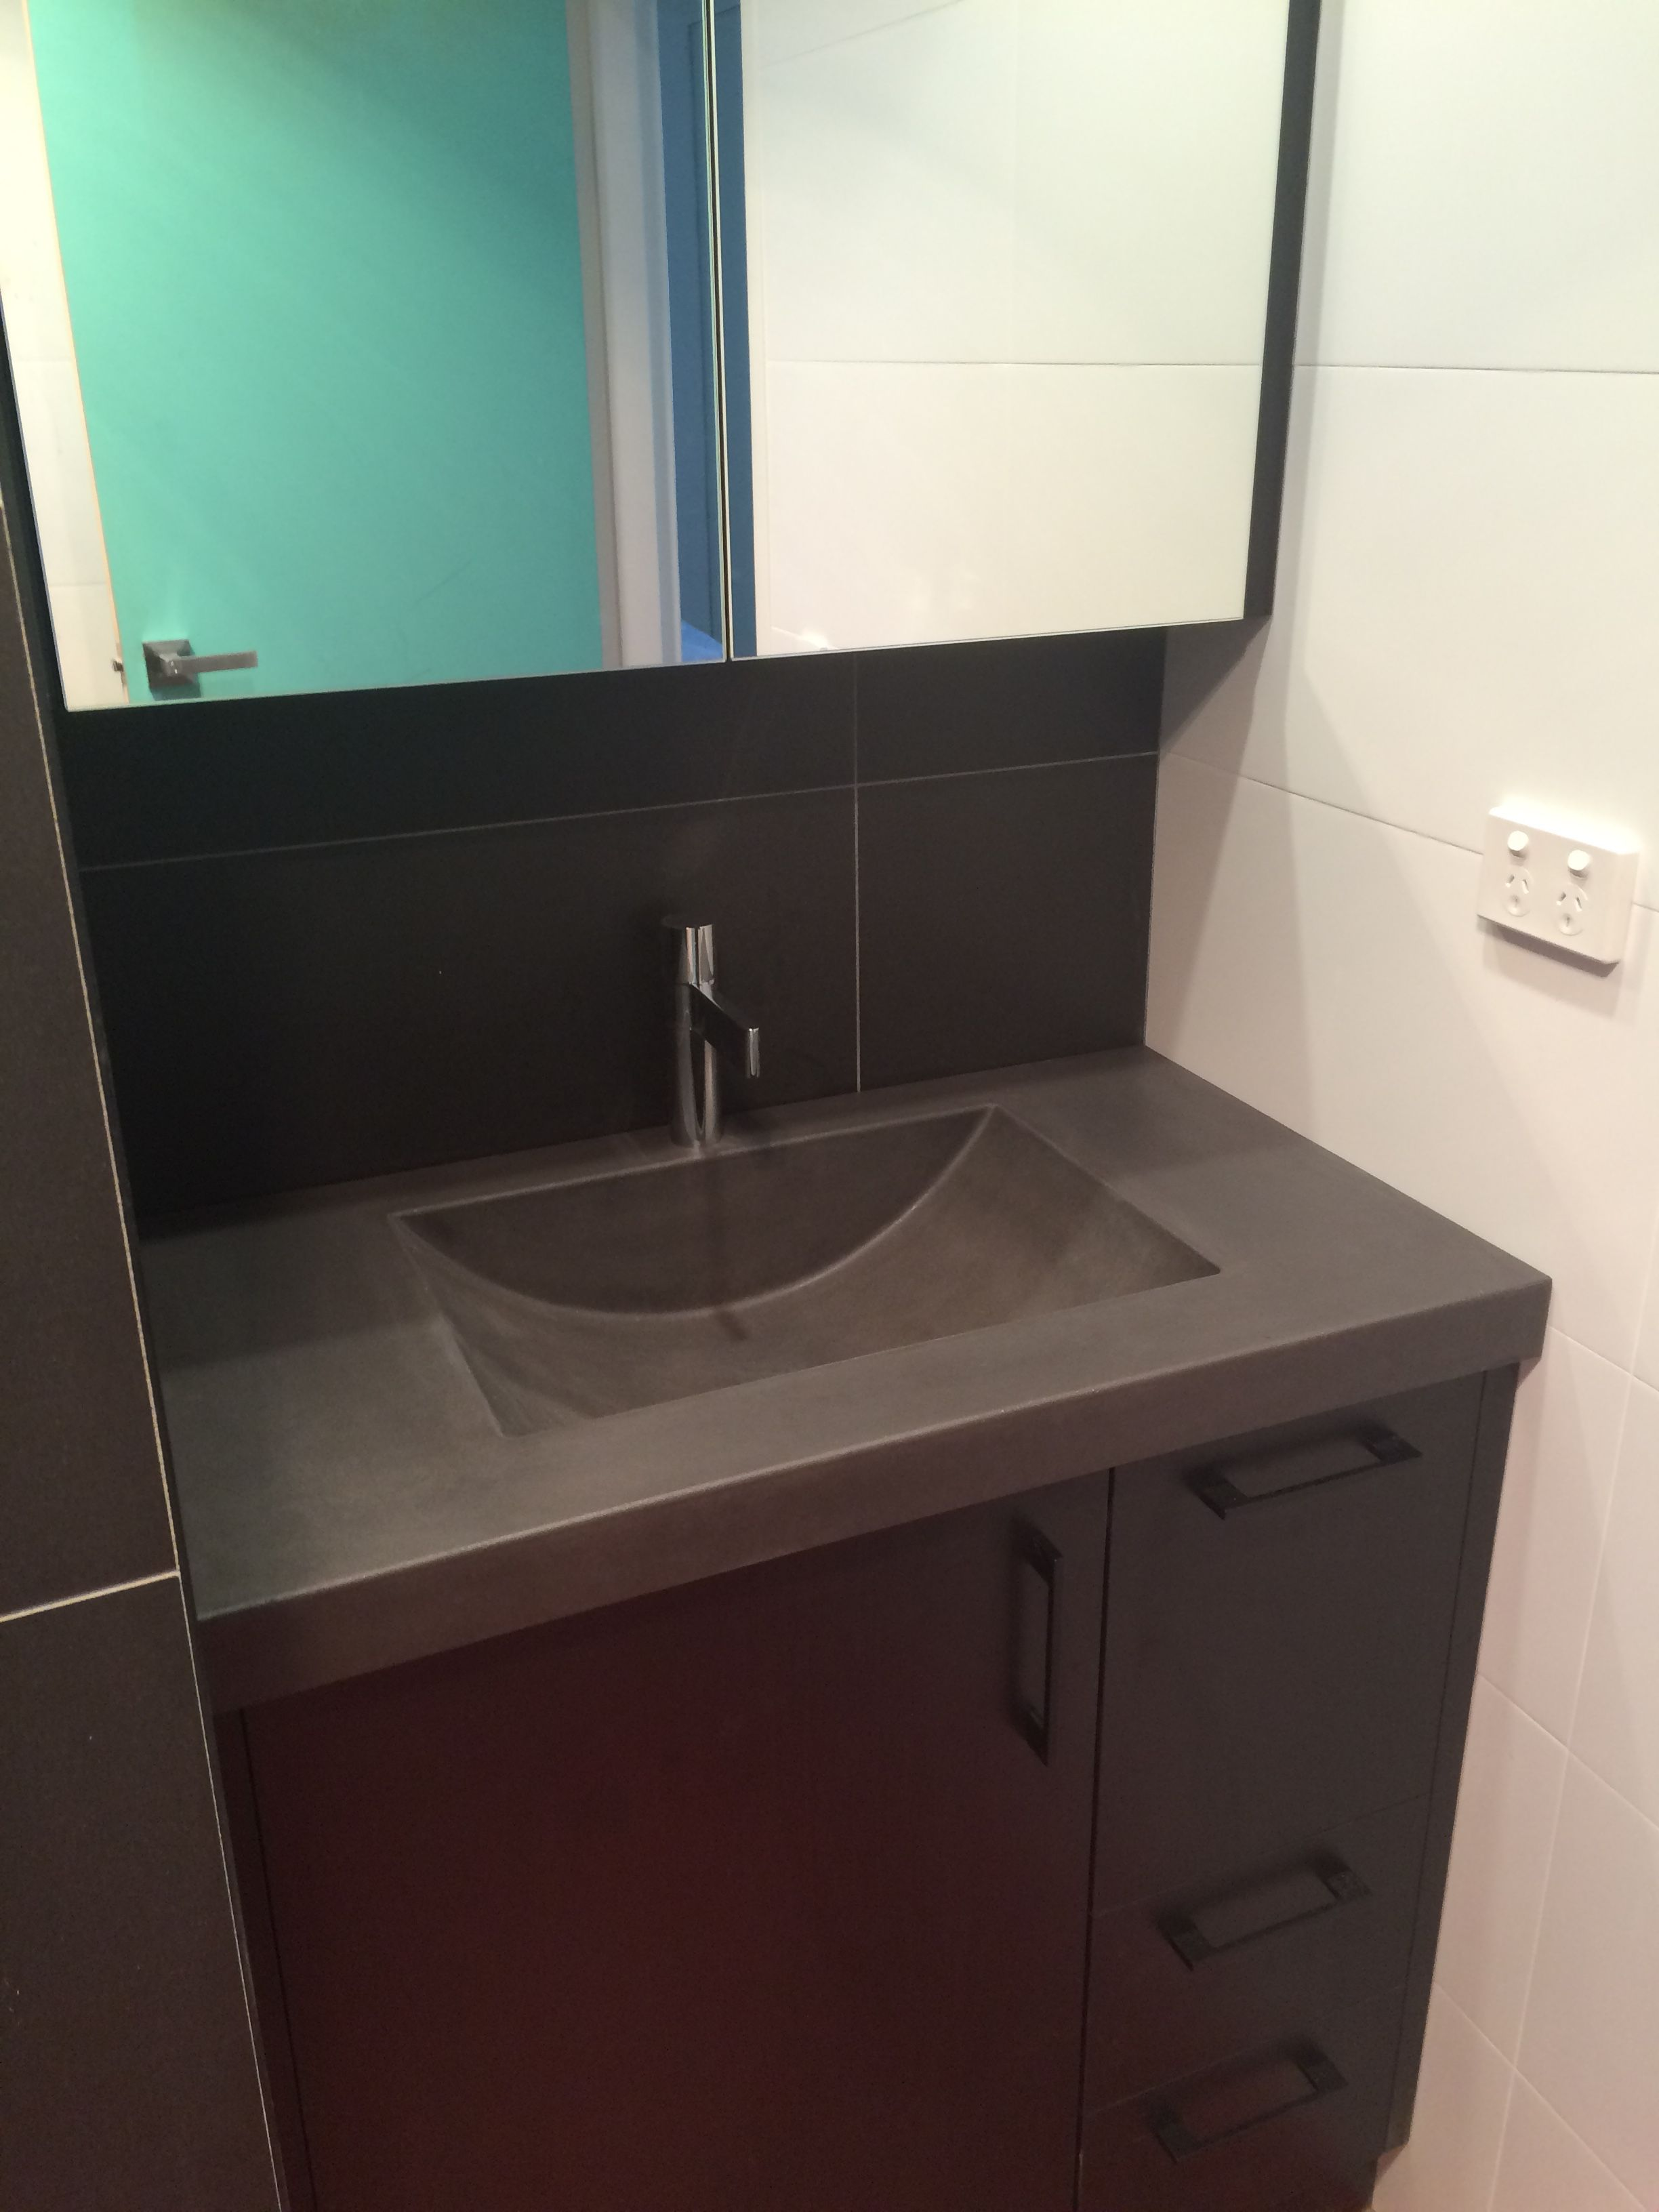 Polished Concrete Vanity Top With Integrated Sink By Mitchell Bink Design Www Mbconcretedesign Au